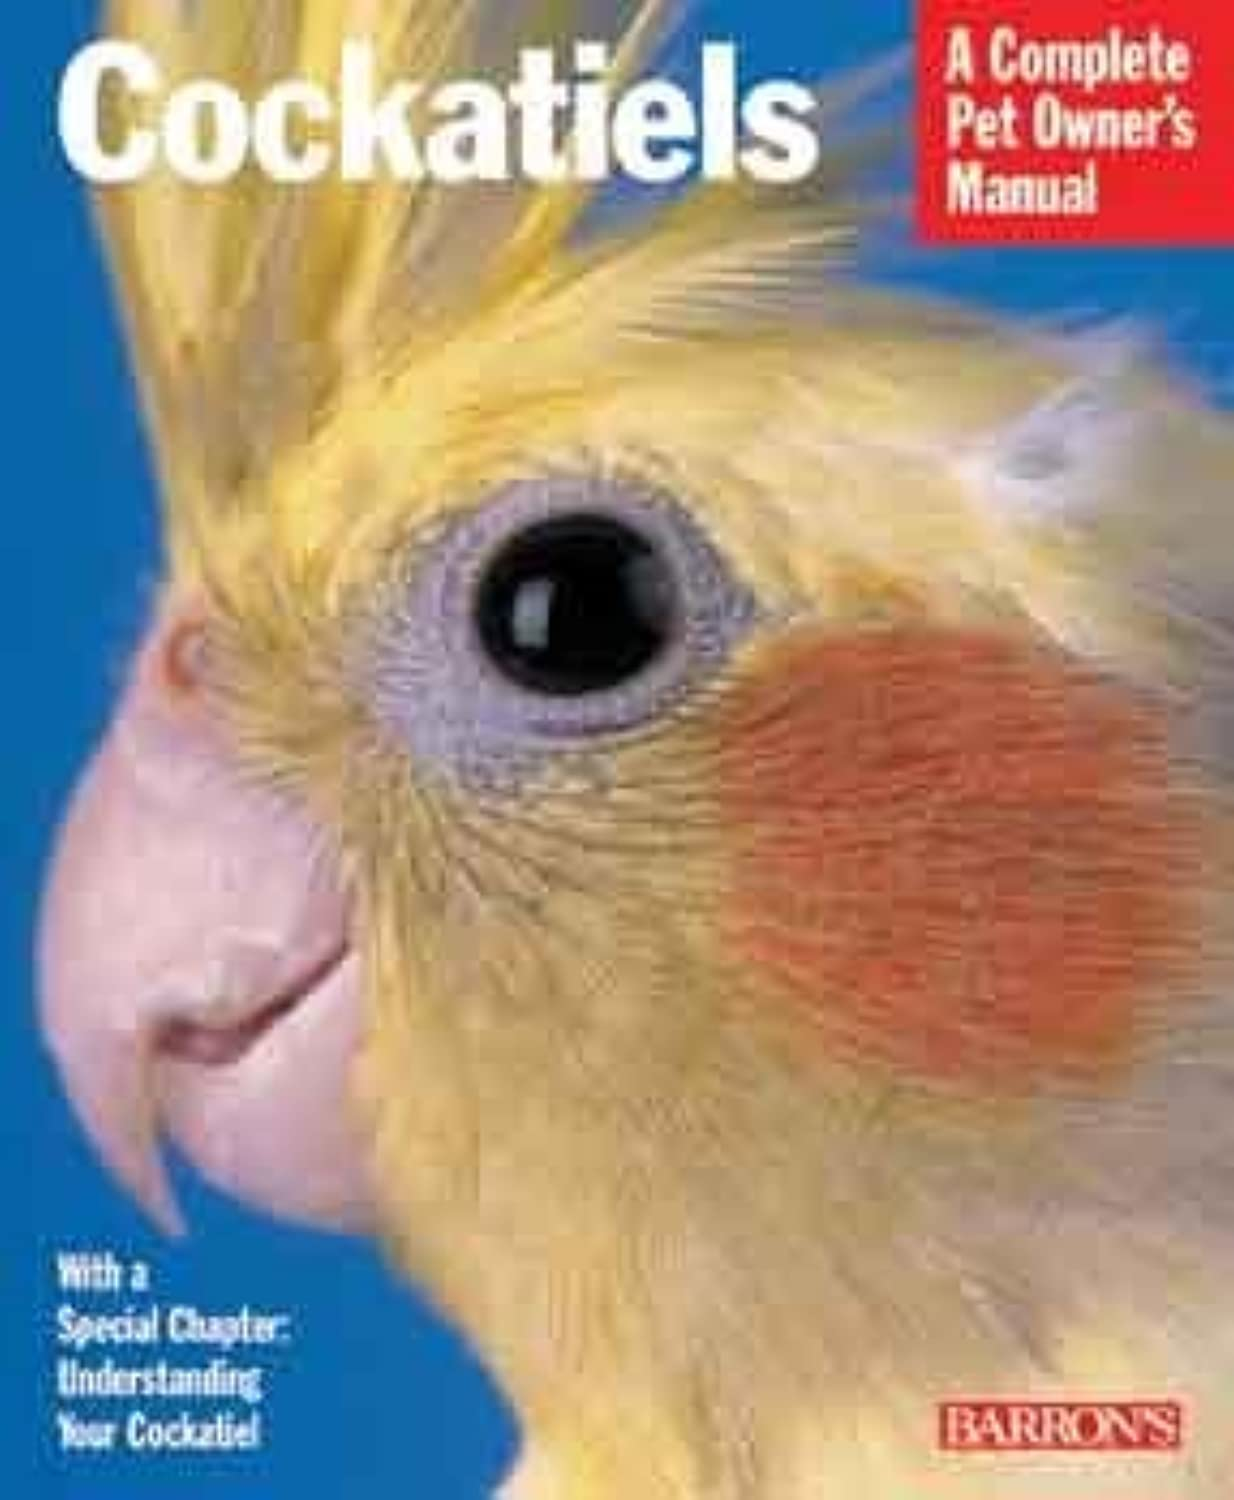 Barrons Books Cockatiels Manual by Barron Publishing